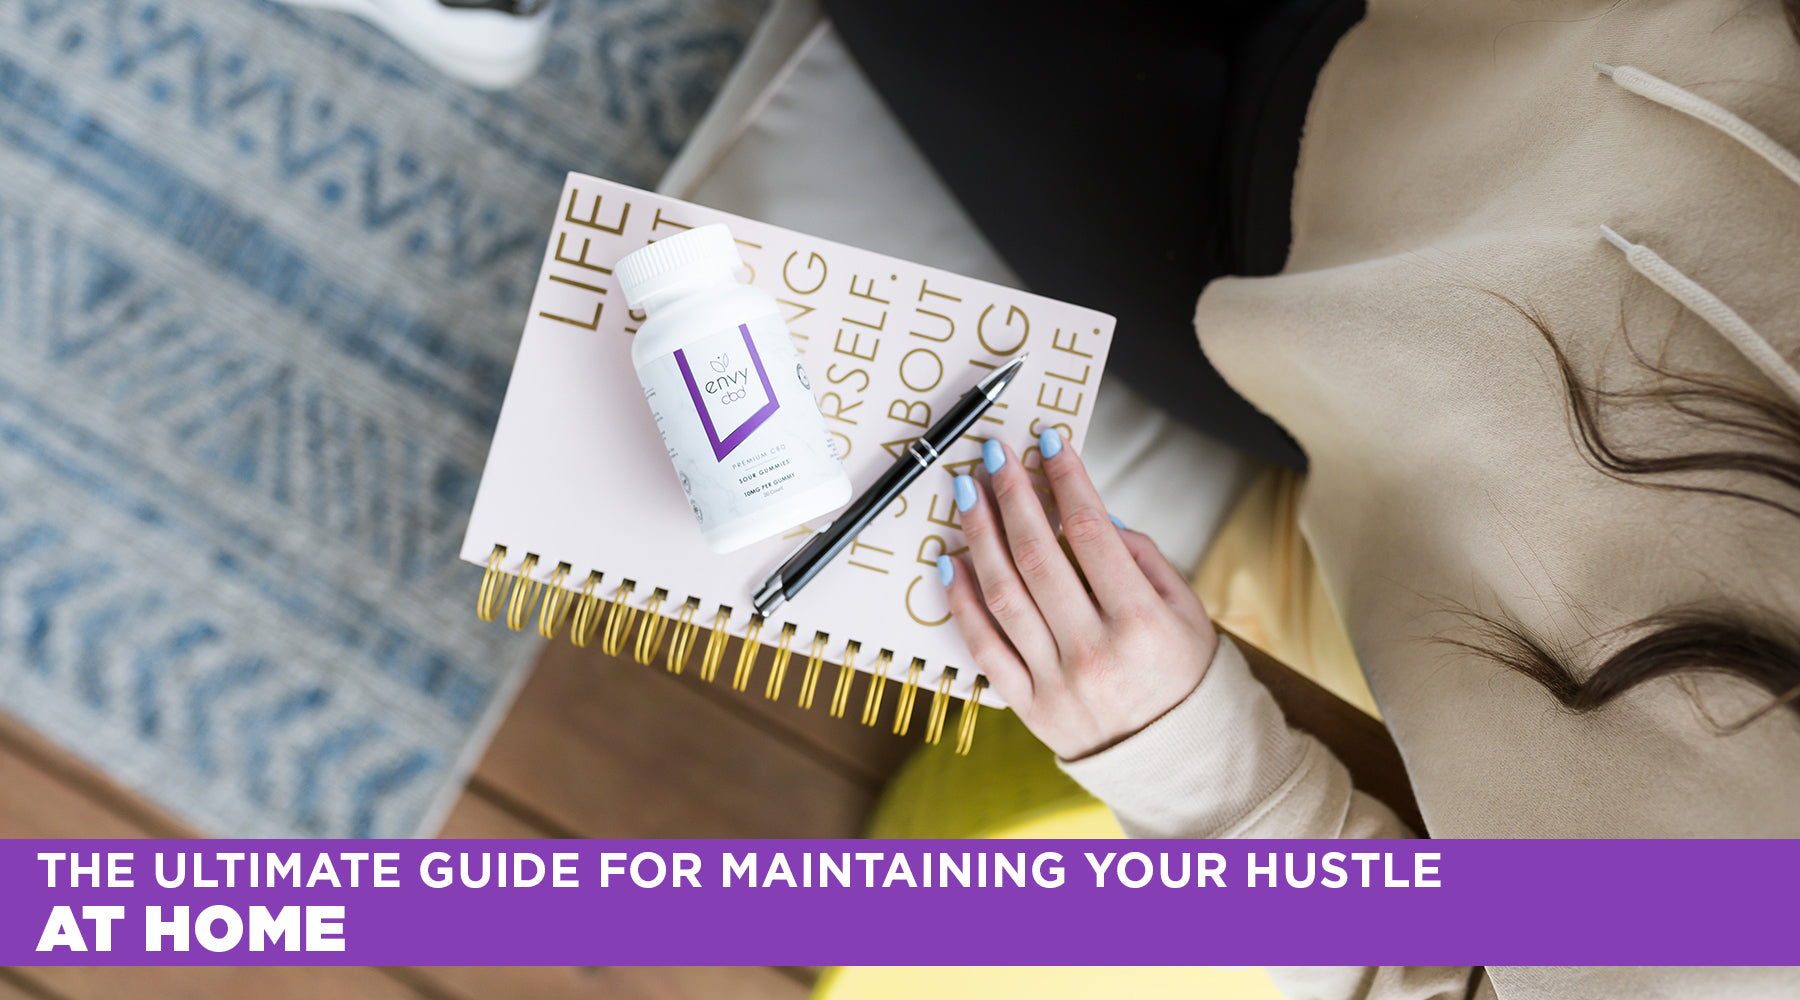 The Ultimate Guide to Maintaining Your Hustle - At Home